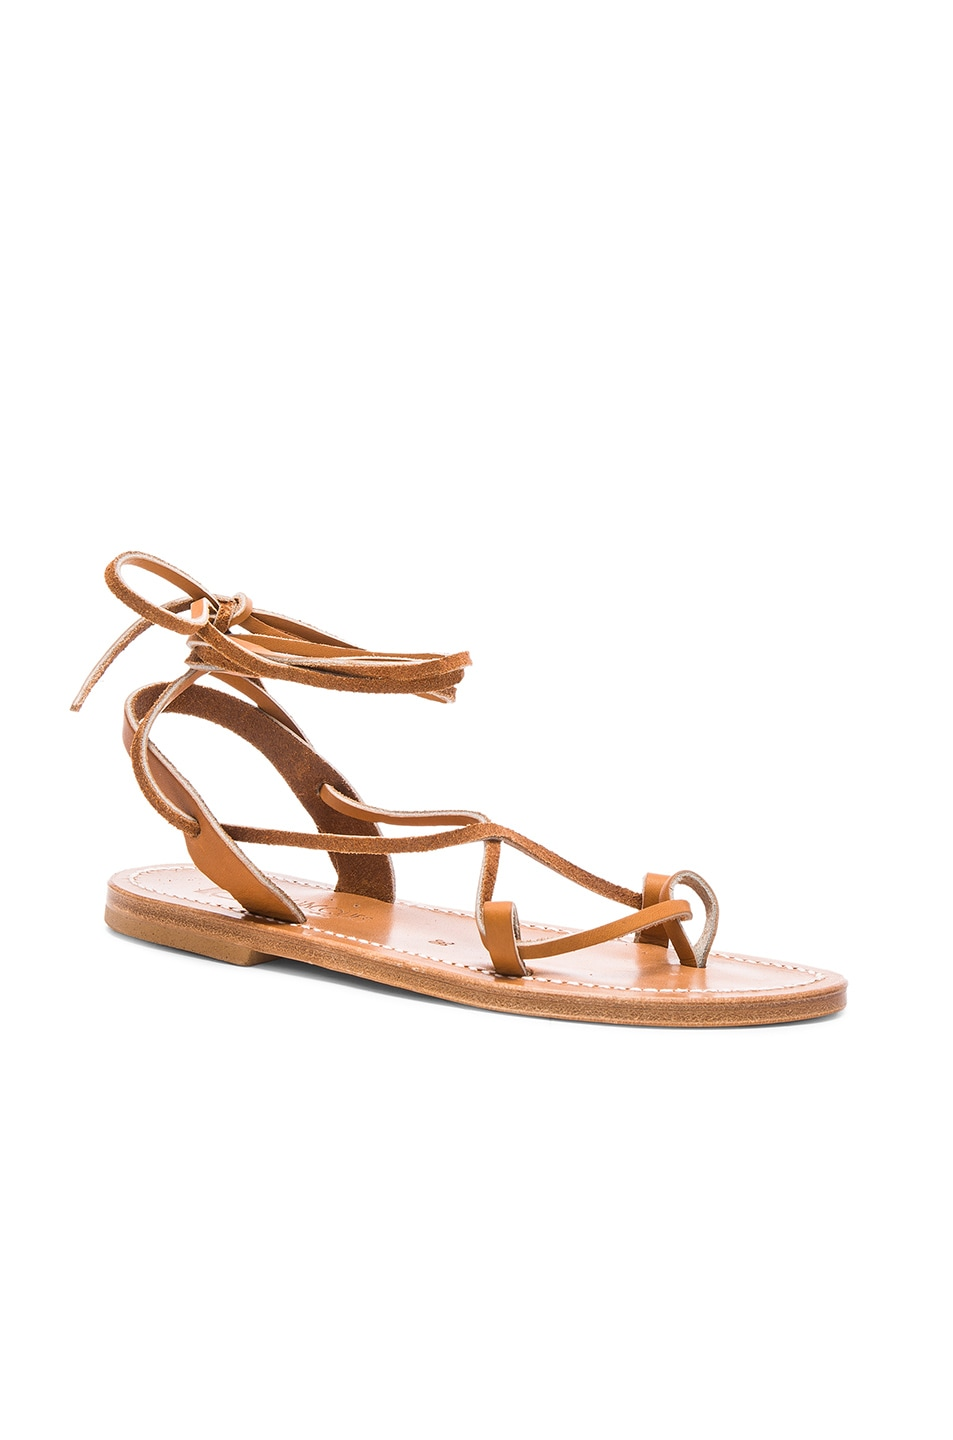 Image 2 of K Jacques Leather Lucile Sandals in Pul Natural